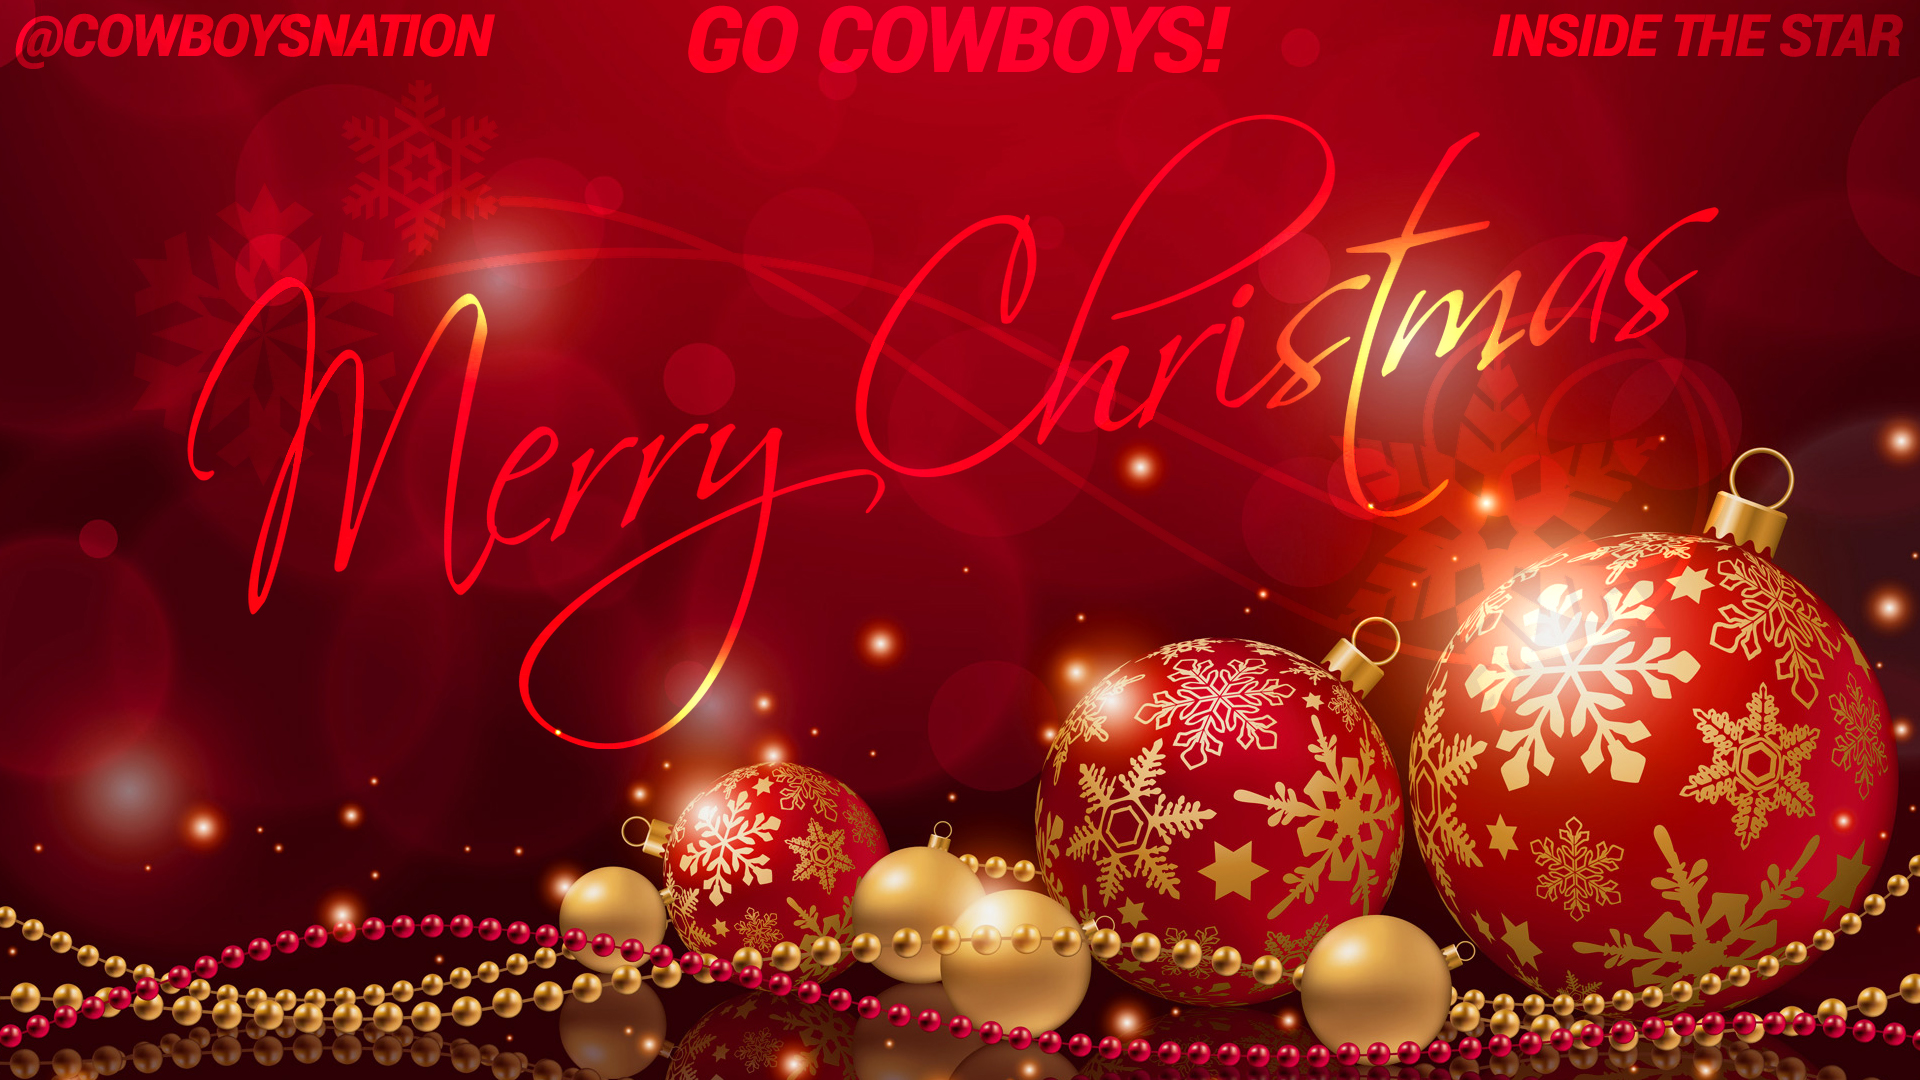 Cowboys Blog - Merry Christmas, Cowboys Fans